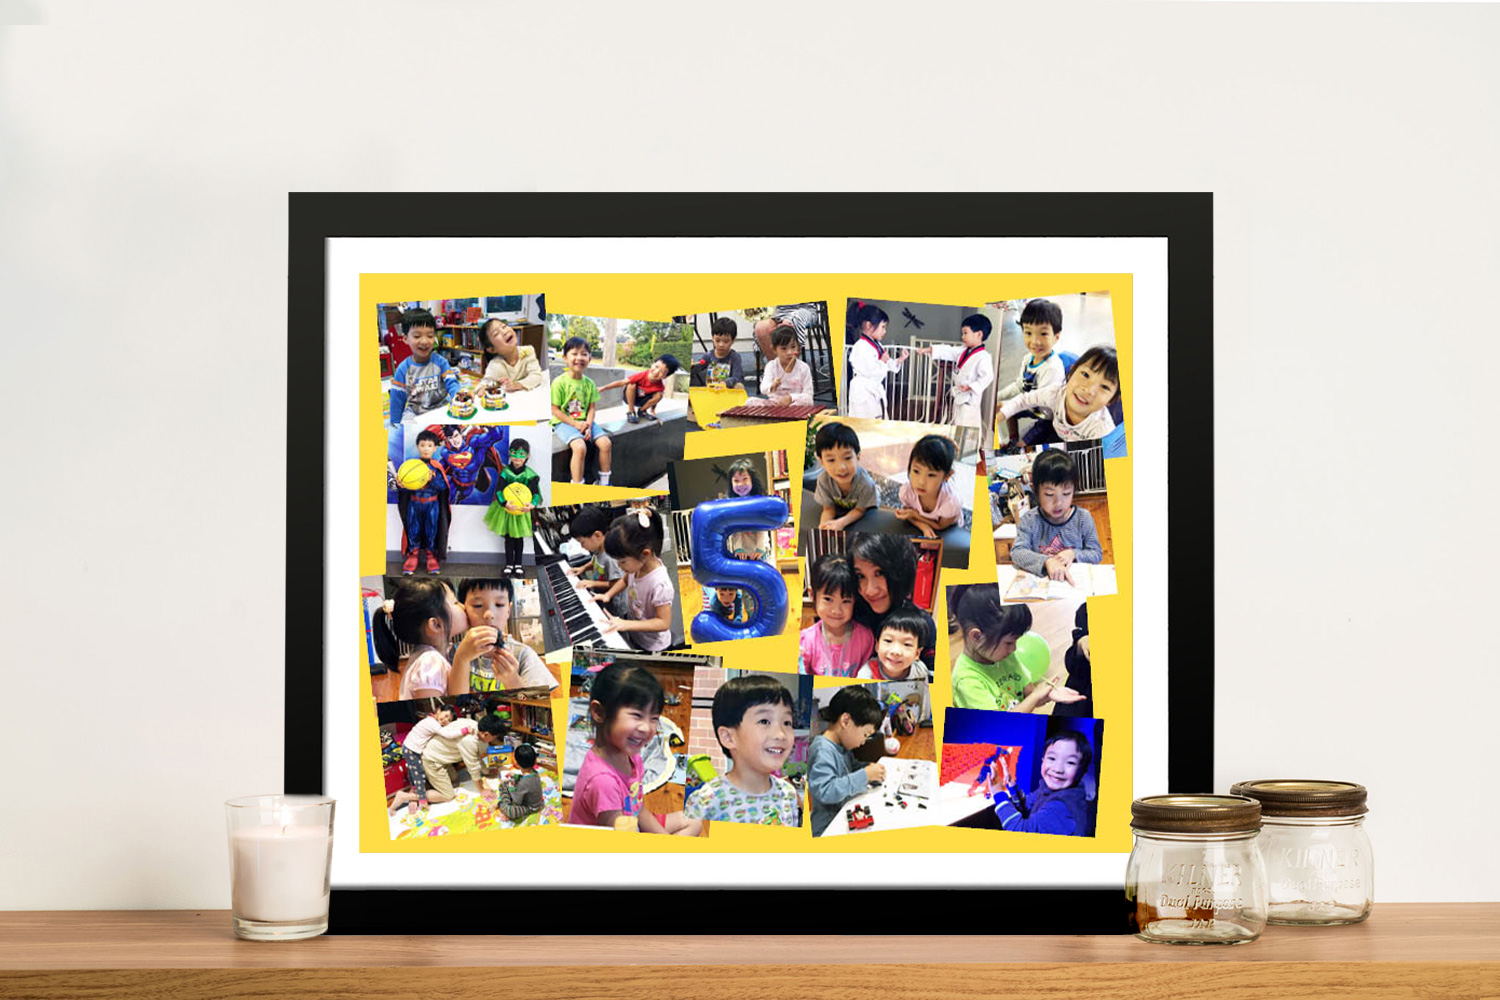 Angled Photo Collage Framed Wall Art   Angled with Colour Background